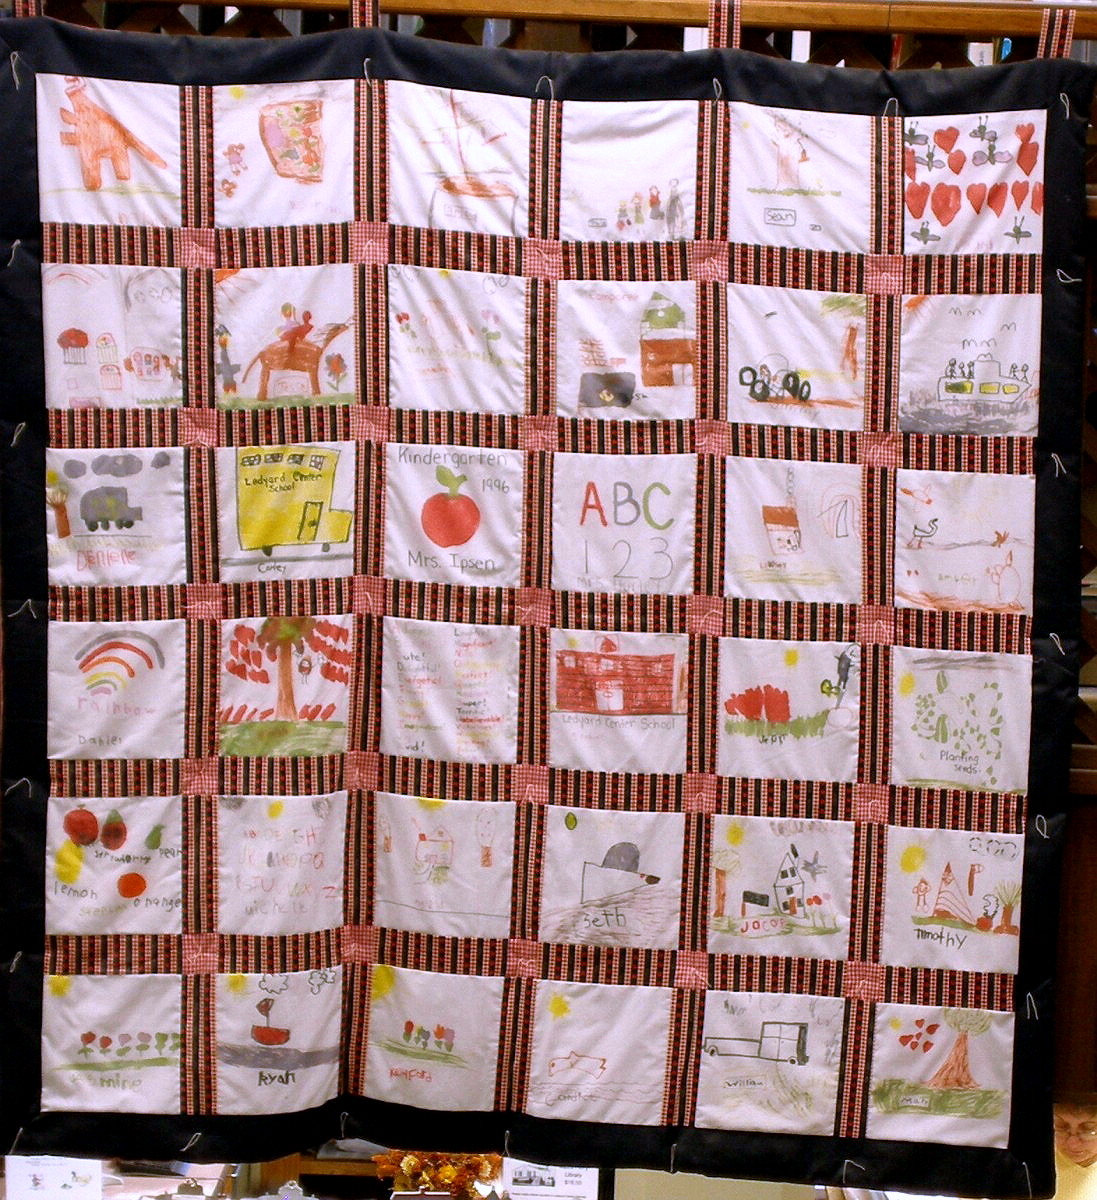 GALES FERRY - GALES FERRY LIBRARY - QUILT - 03